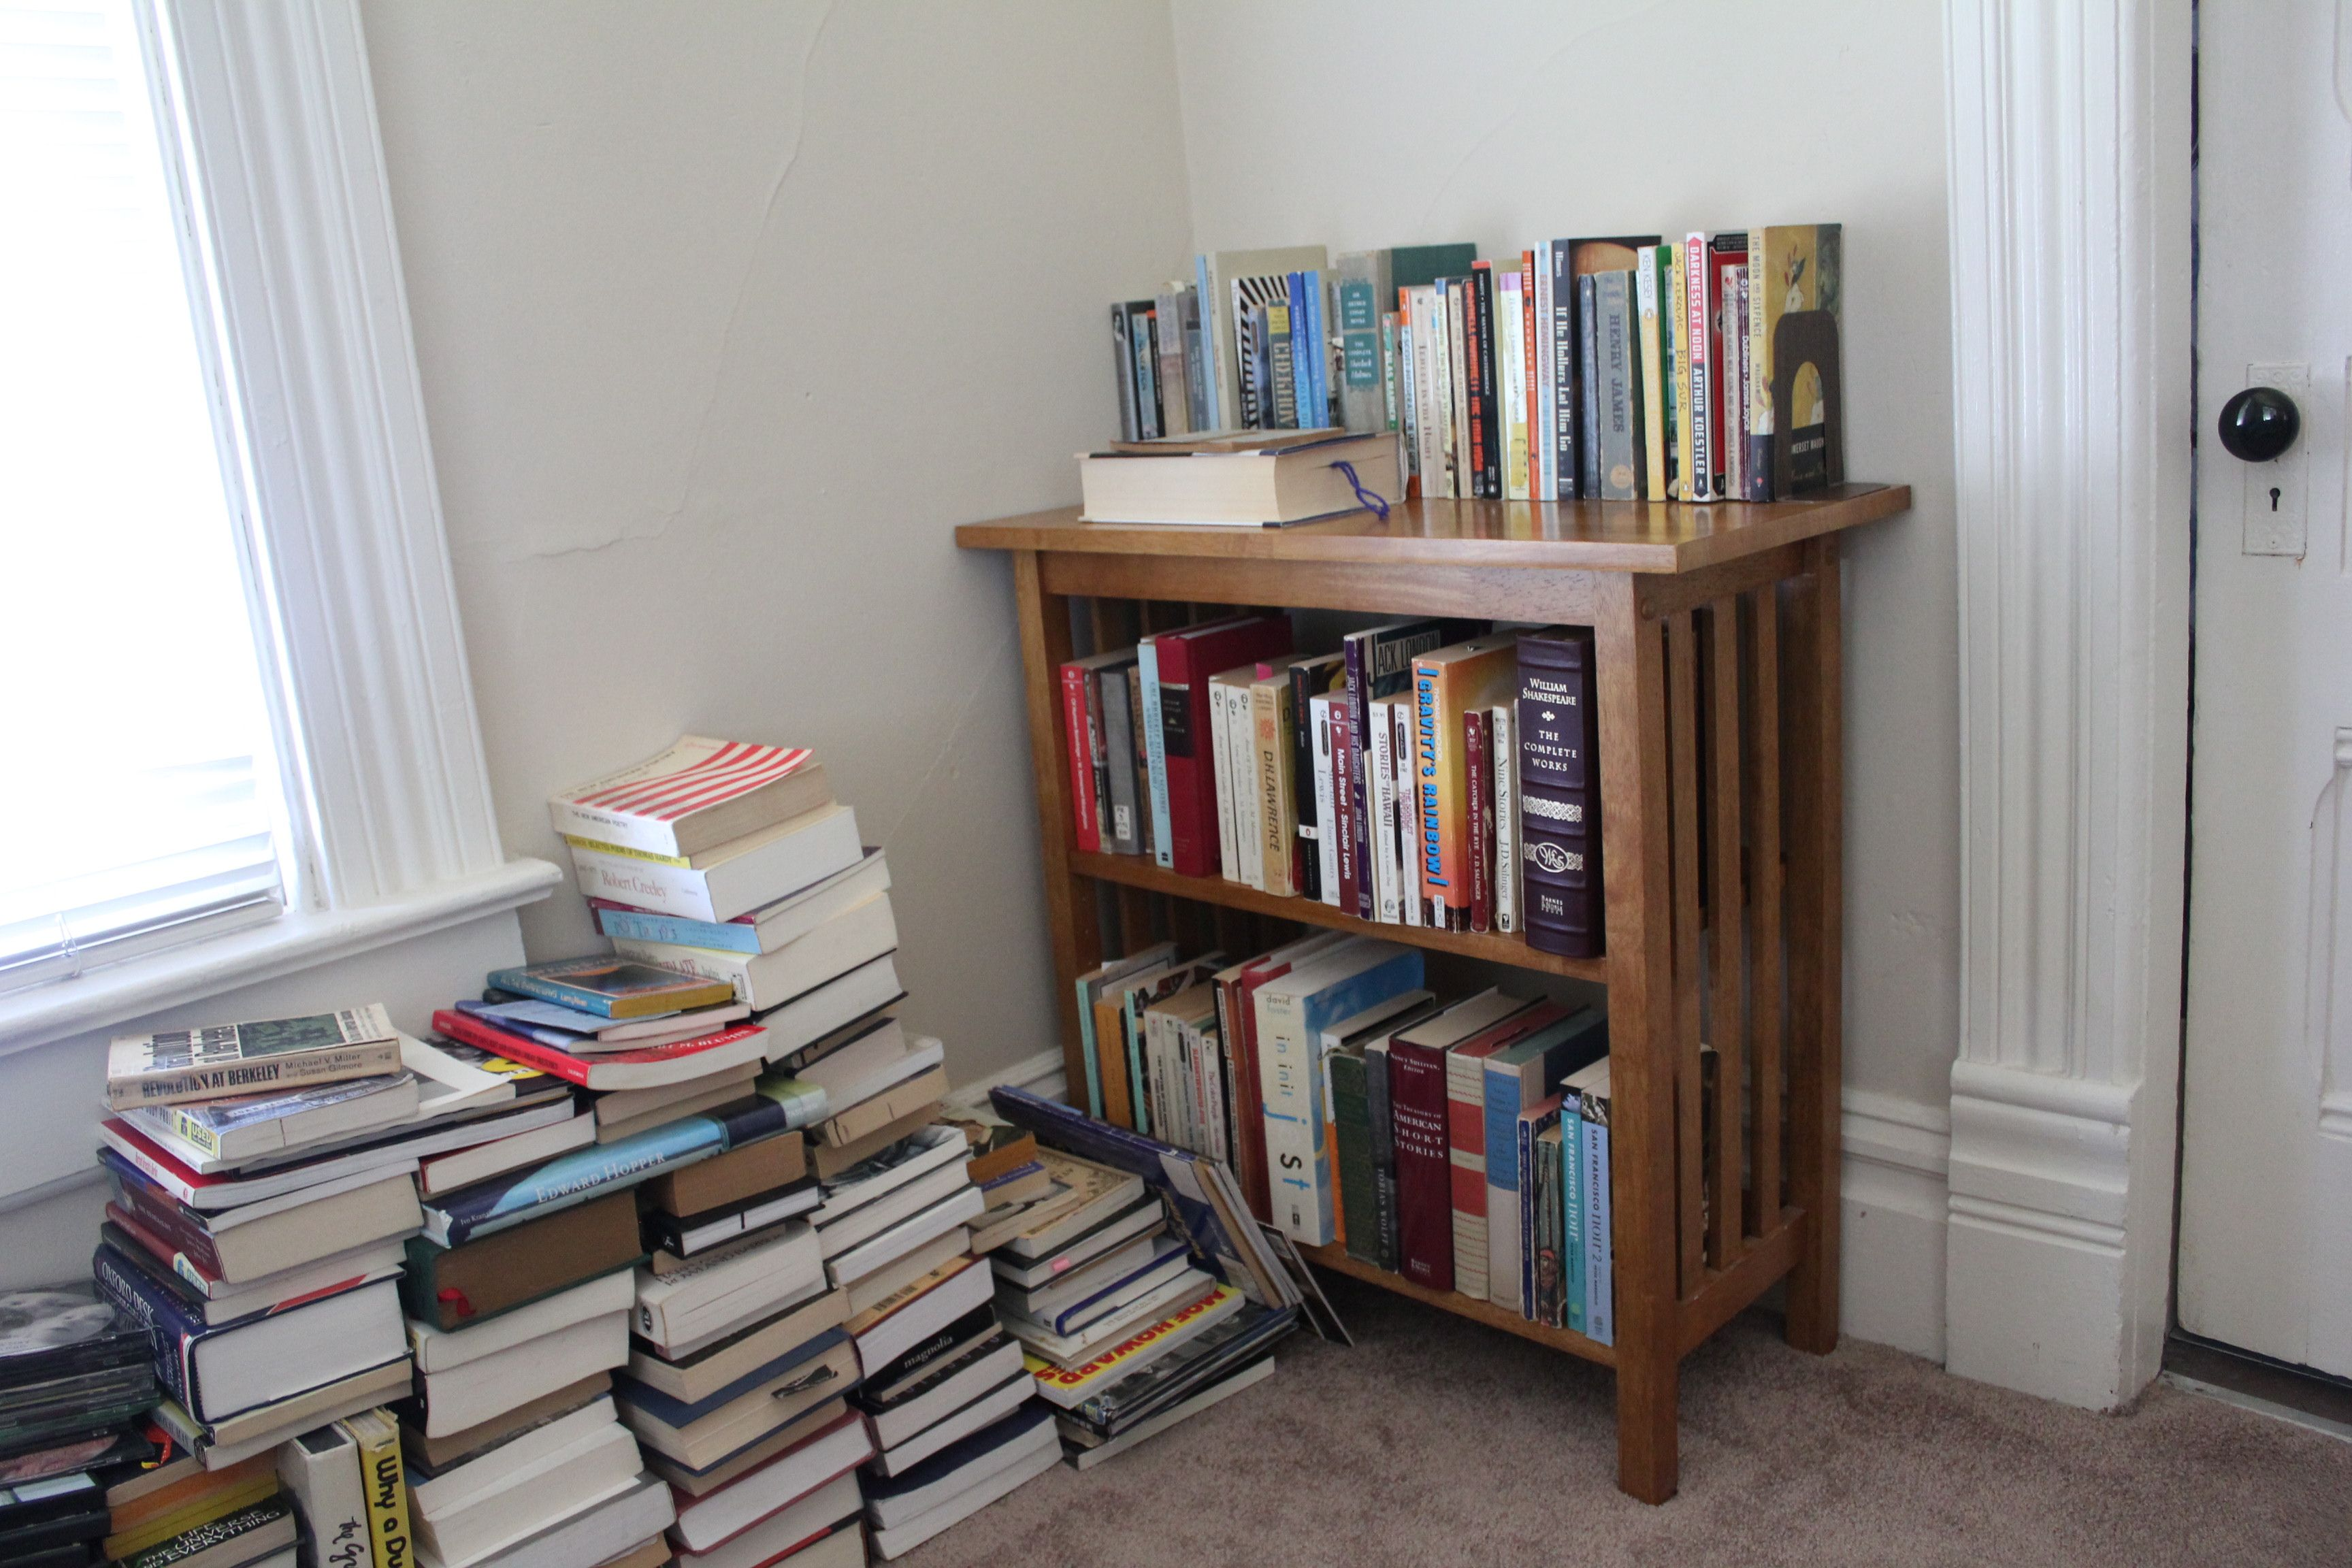 At least the novels have a home.  Now what to do with all the history books.